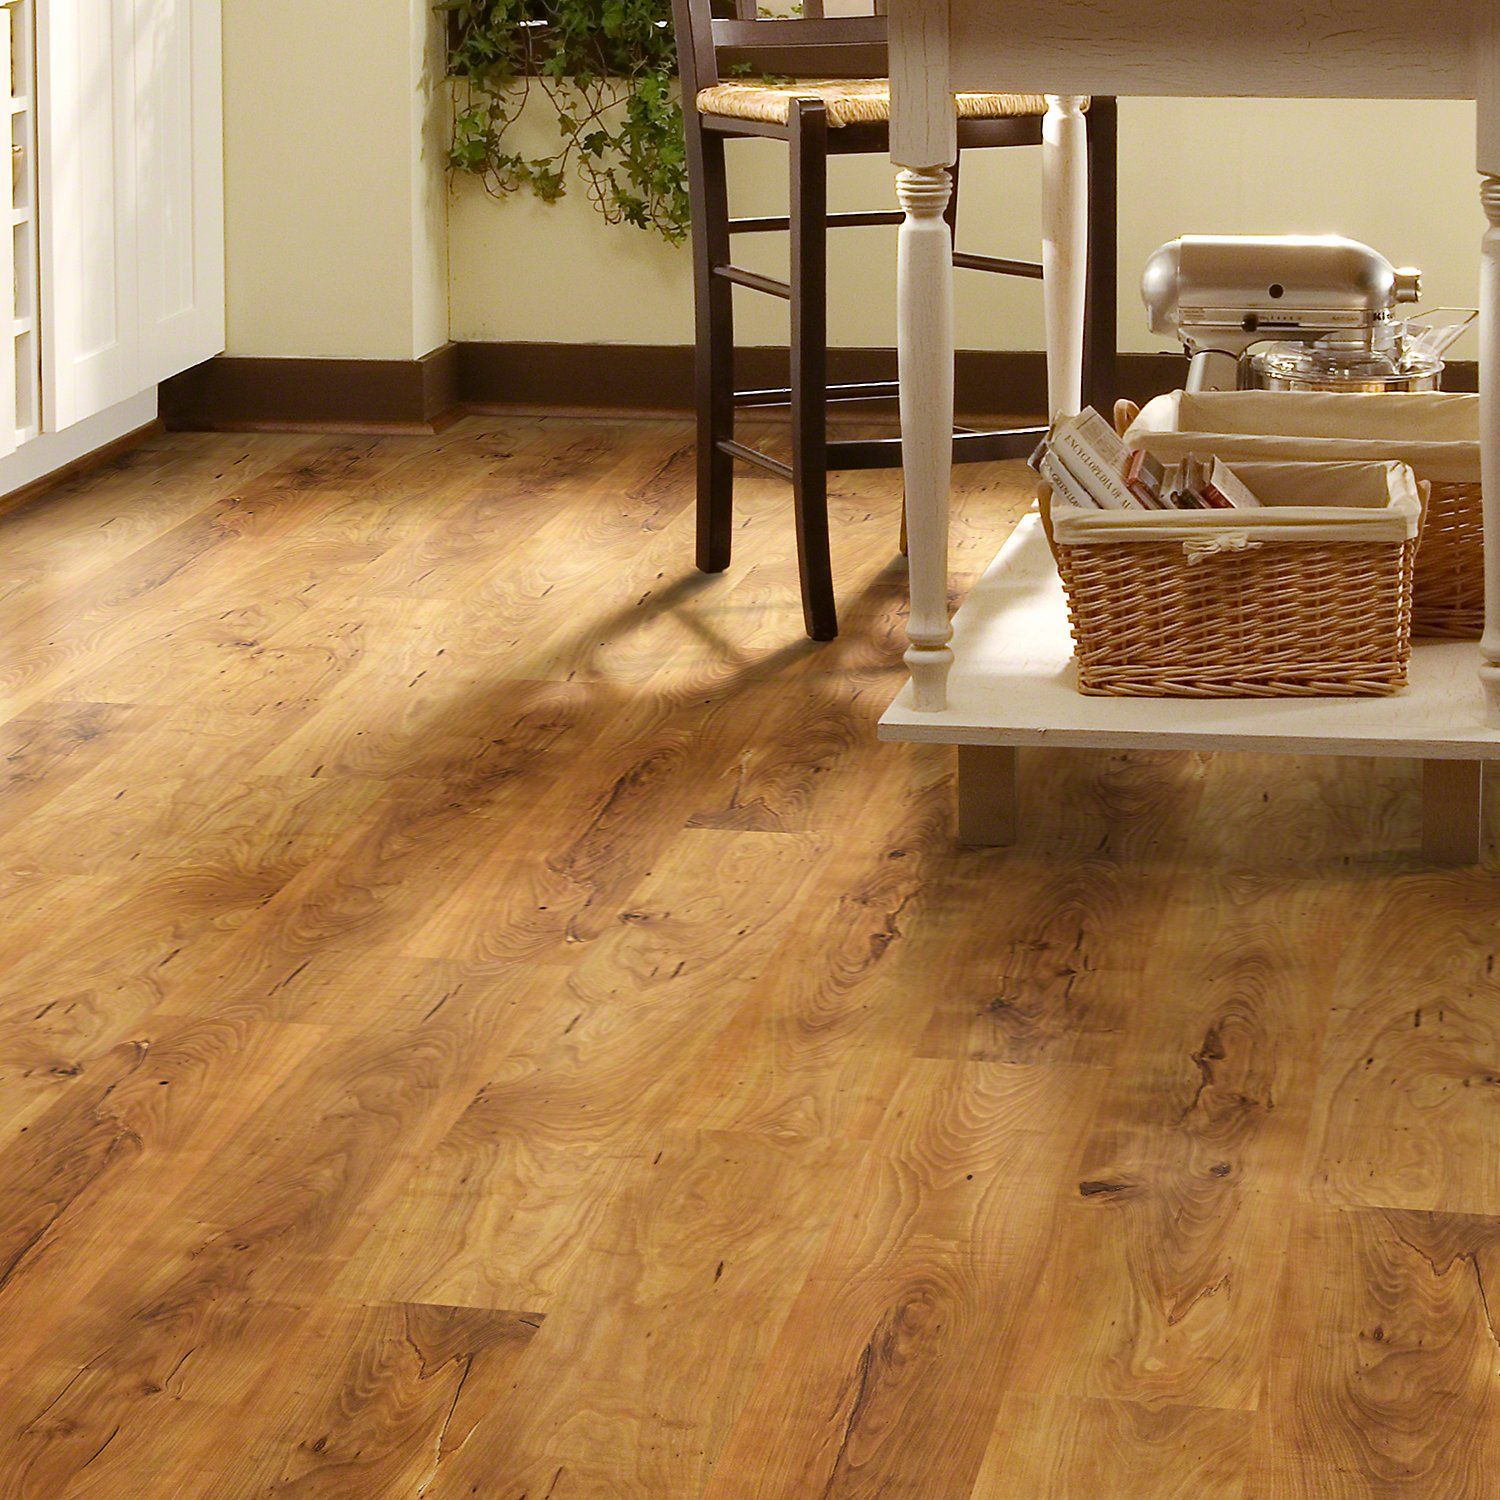 Shaw Floors Fairfax X X Pine Laminate Flooring In Herndon